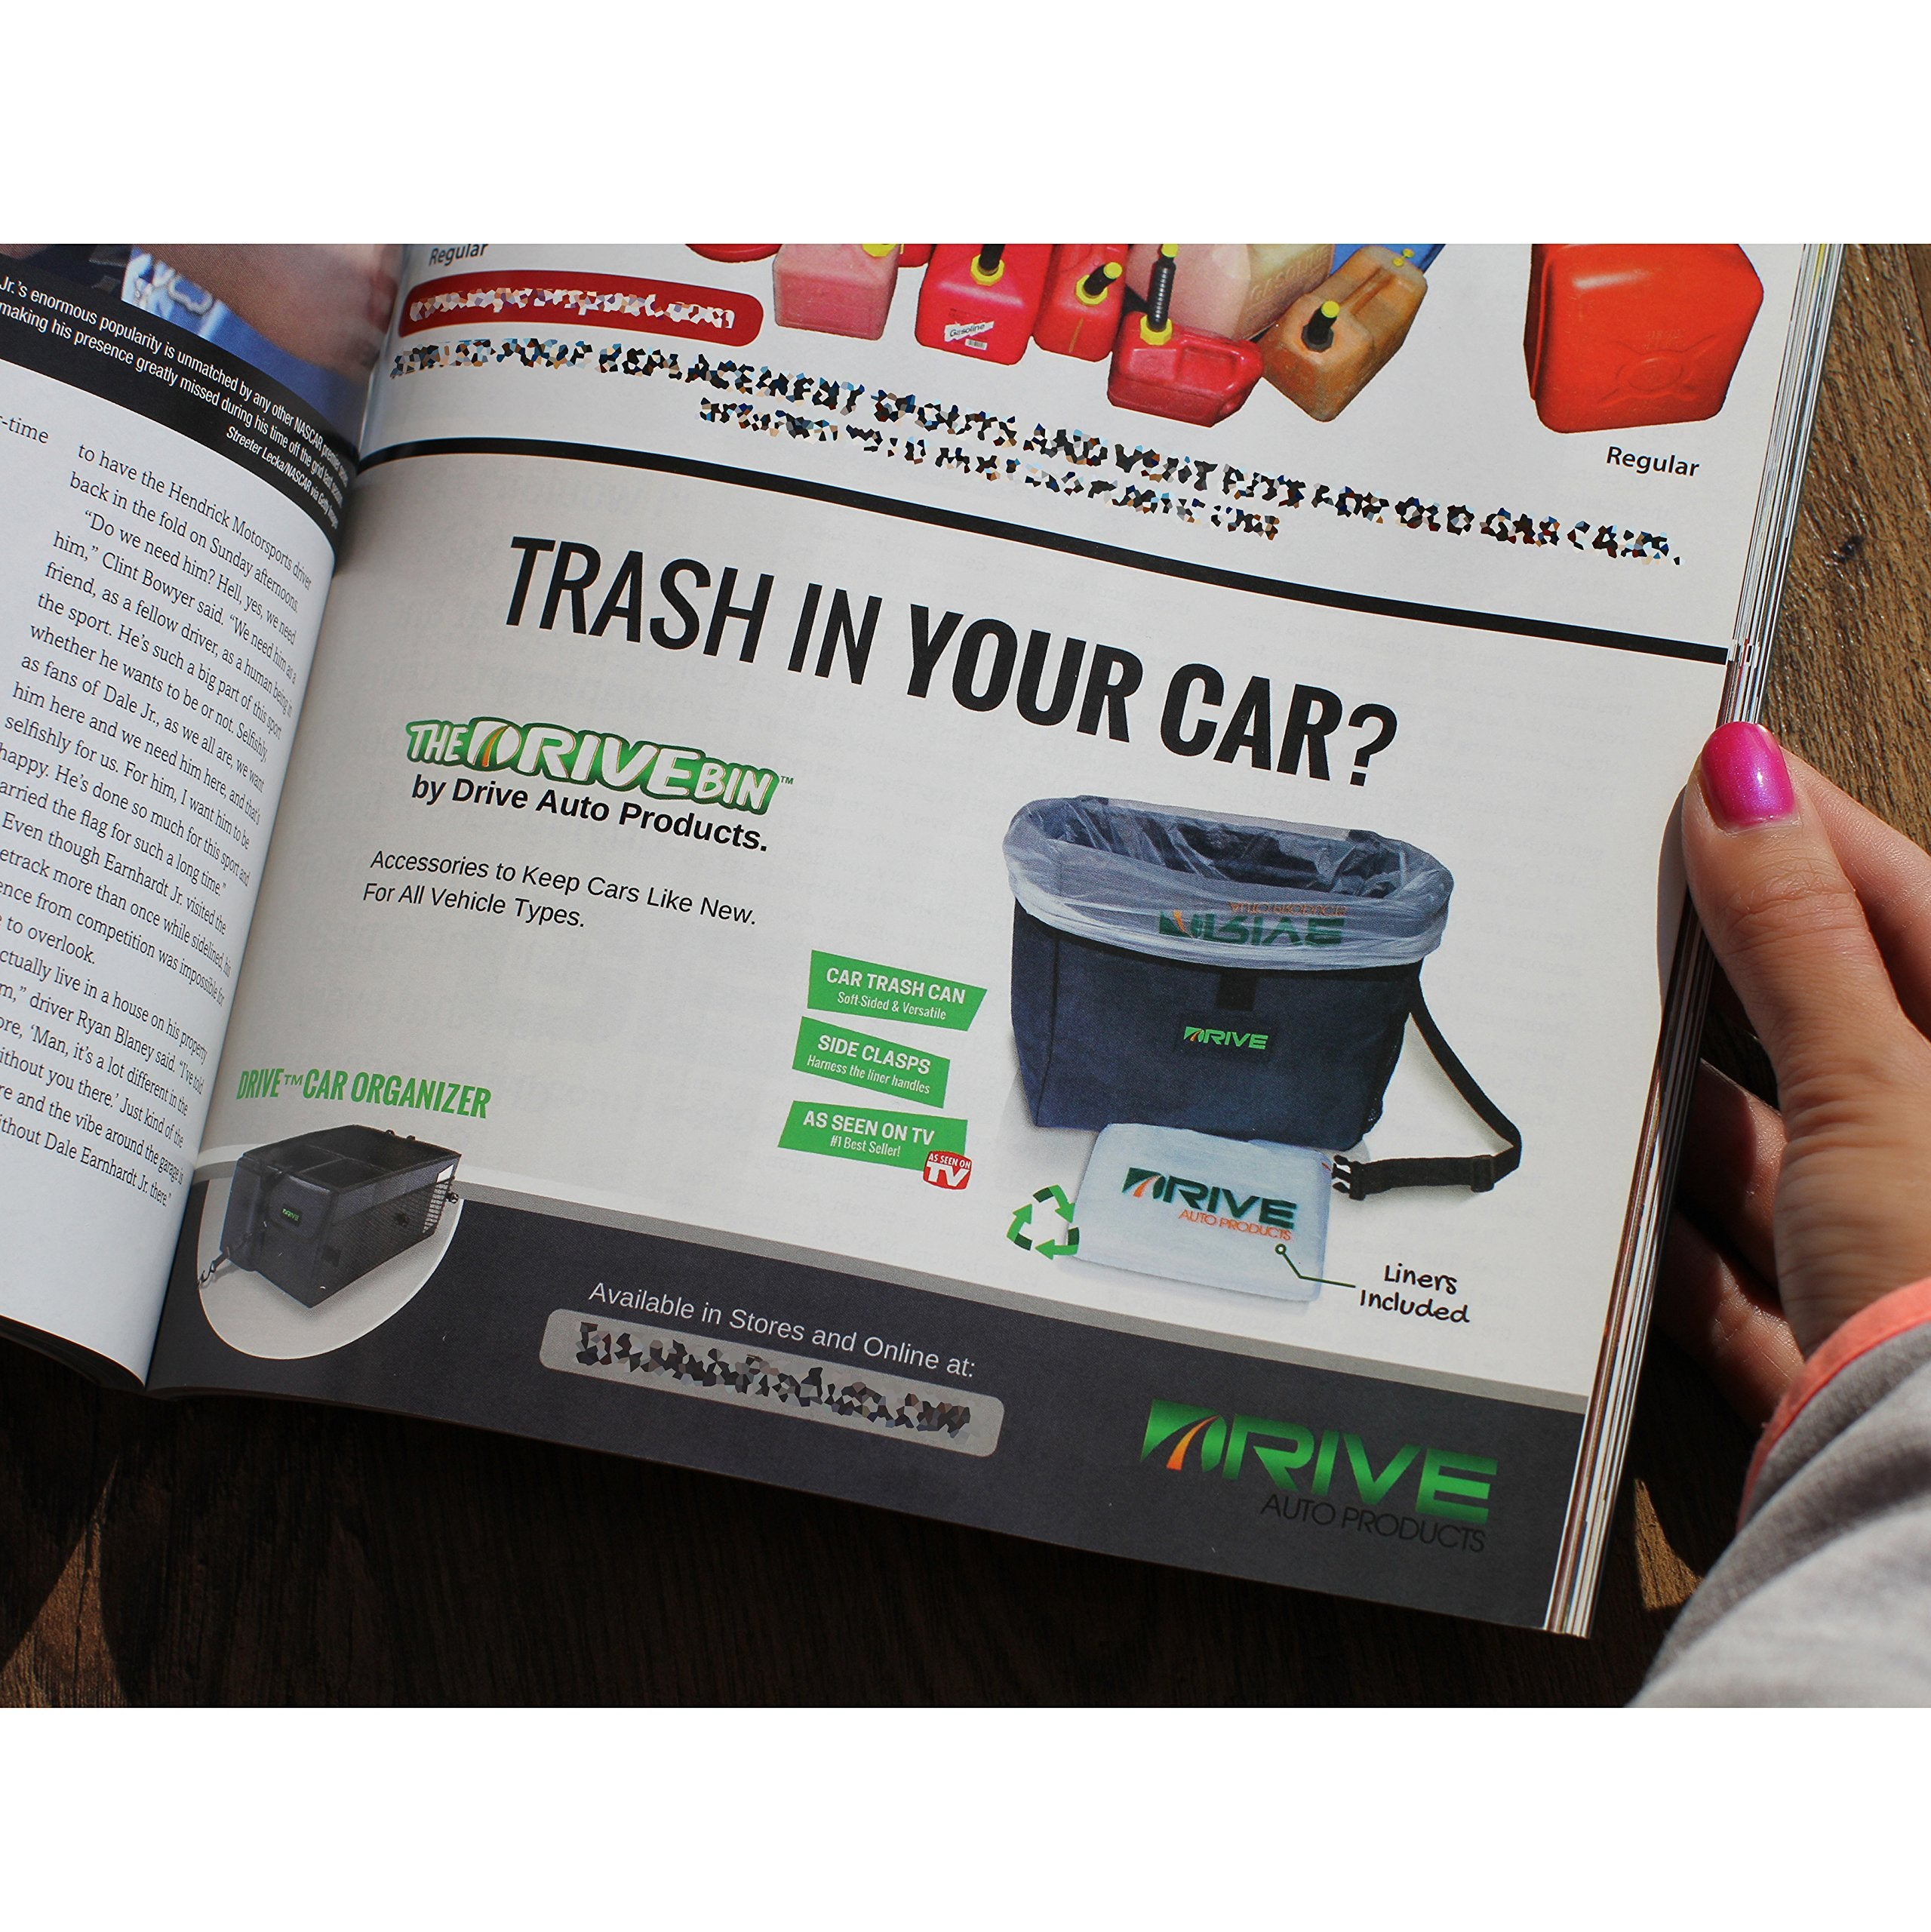 Car Garbage Can, Liner Refills (40-Pack) - The Drive Bin As Seen On TV Collection by Drive Auto Products